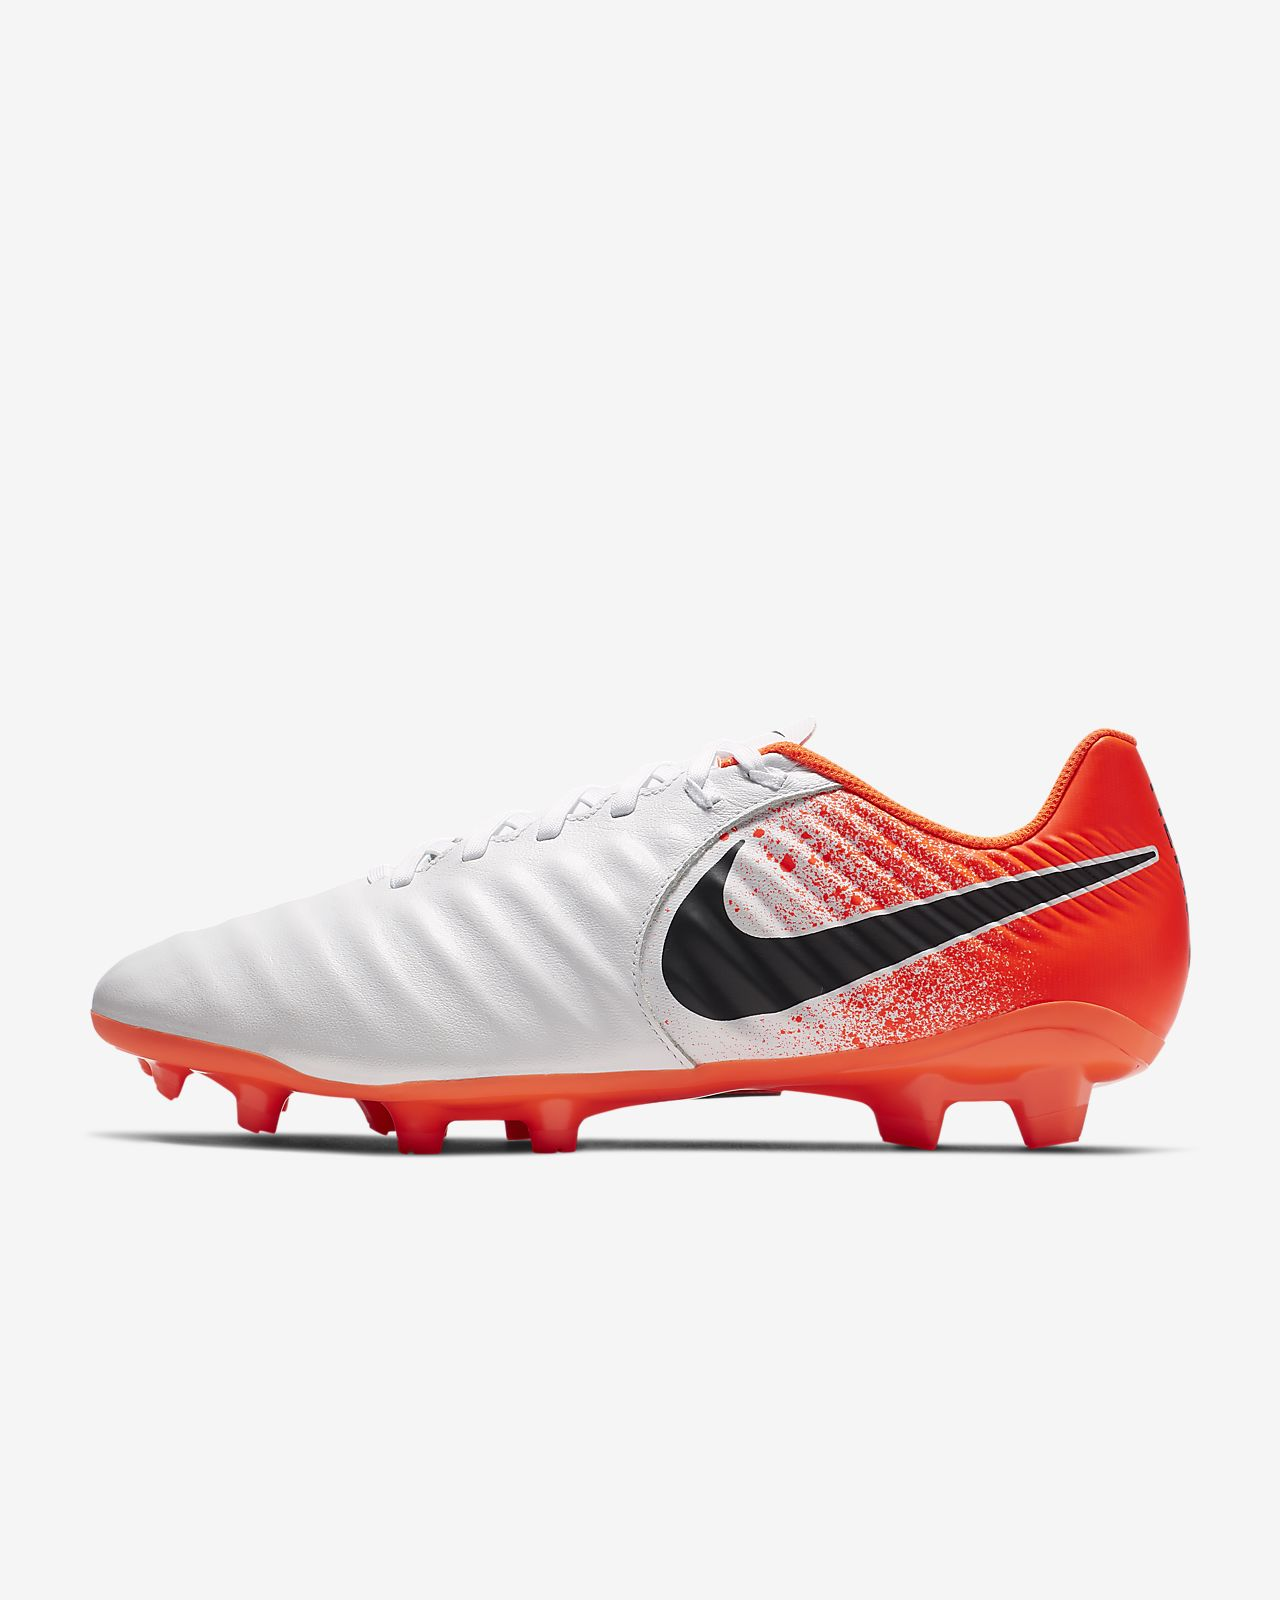 new arrival 40590 d9236 ... Nike Tiempo Legend VII Academy Firm-Ground Football Boot